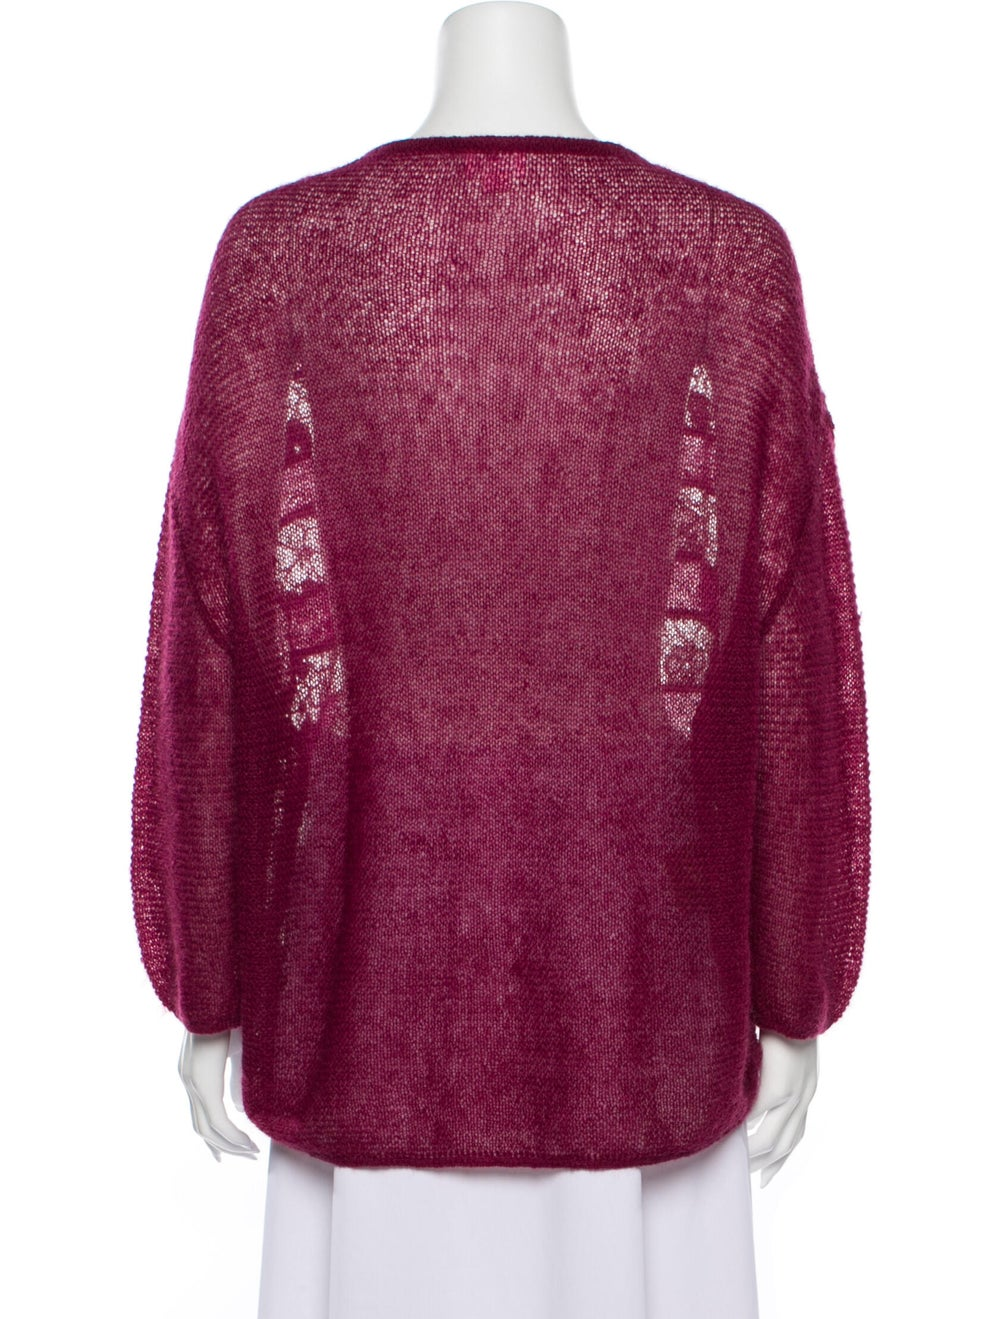 Giamba Lace Pattern Scoop Neck Sweater - image 3